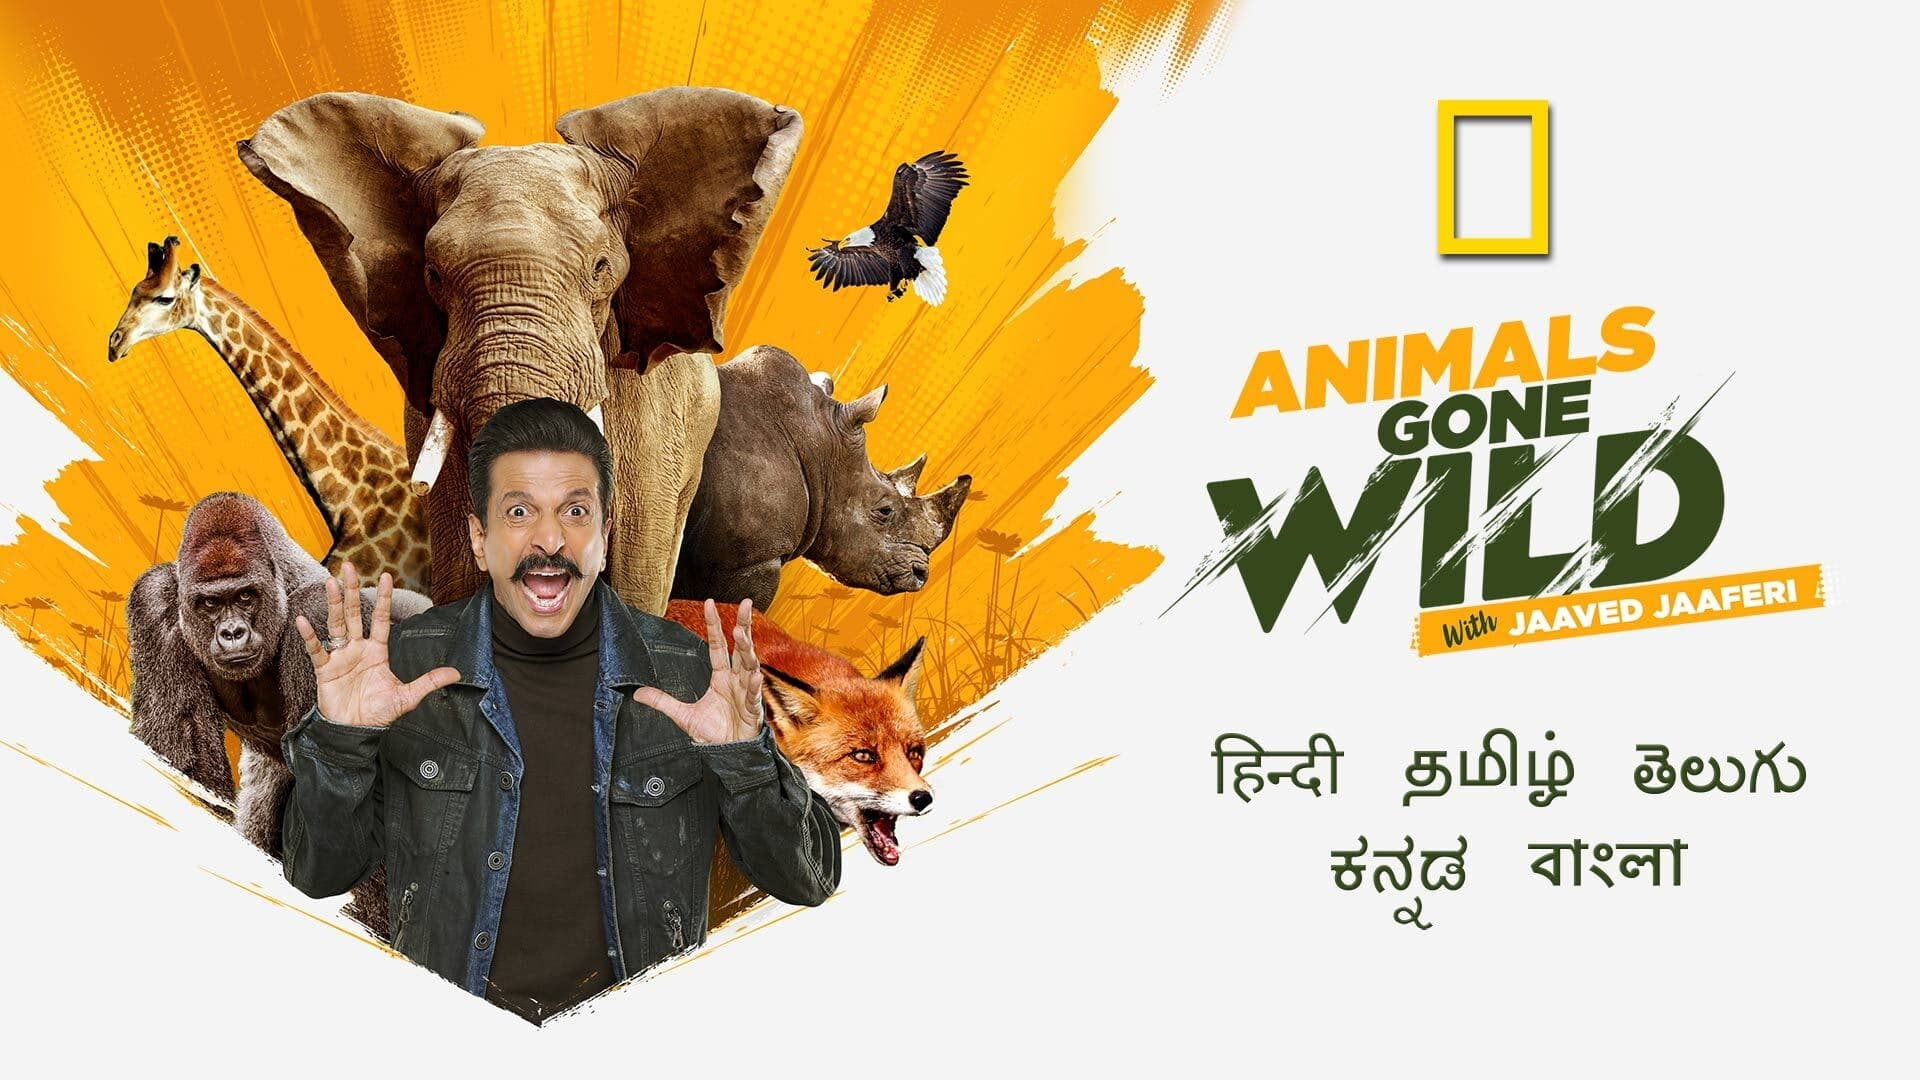 Animals Gone Wild With Jaaved Jaaferi S01 2021 NatGeo Web Series Hindi HS WebRip All Episodes 60mb 480p 200mb 720p 500mb 1080p